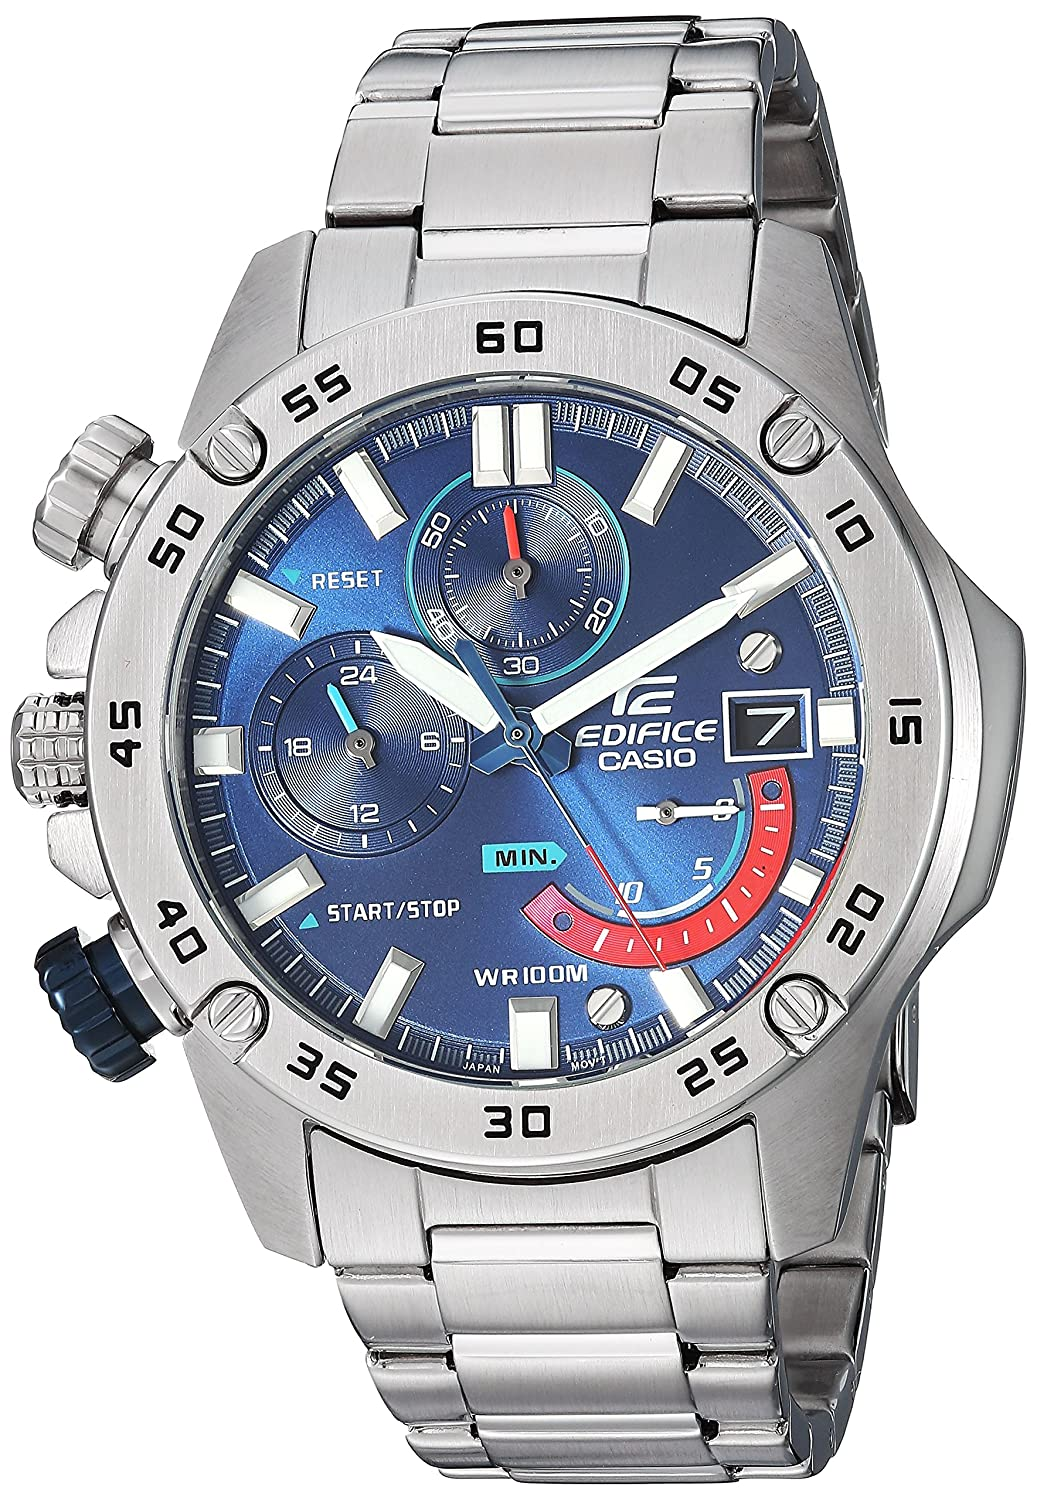 Amazon.com: Casio Mens Edifice Quartz Watch with Stainless-Steel Strap, Silver, 20.5 (Model: EFR-558D-2AVCF) : Watches